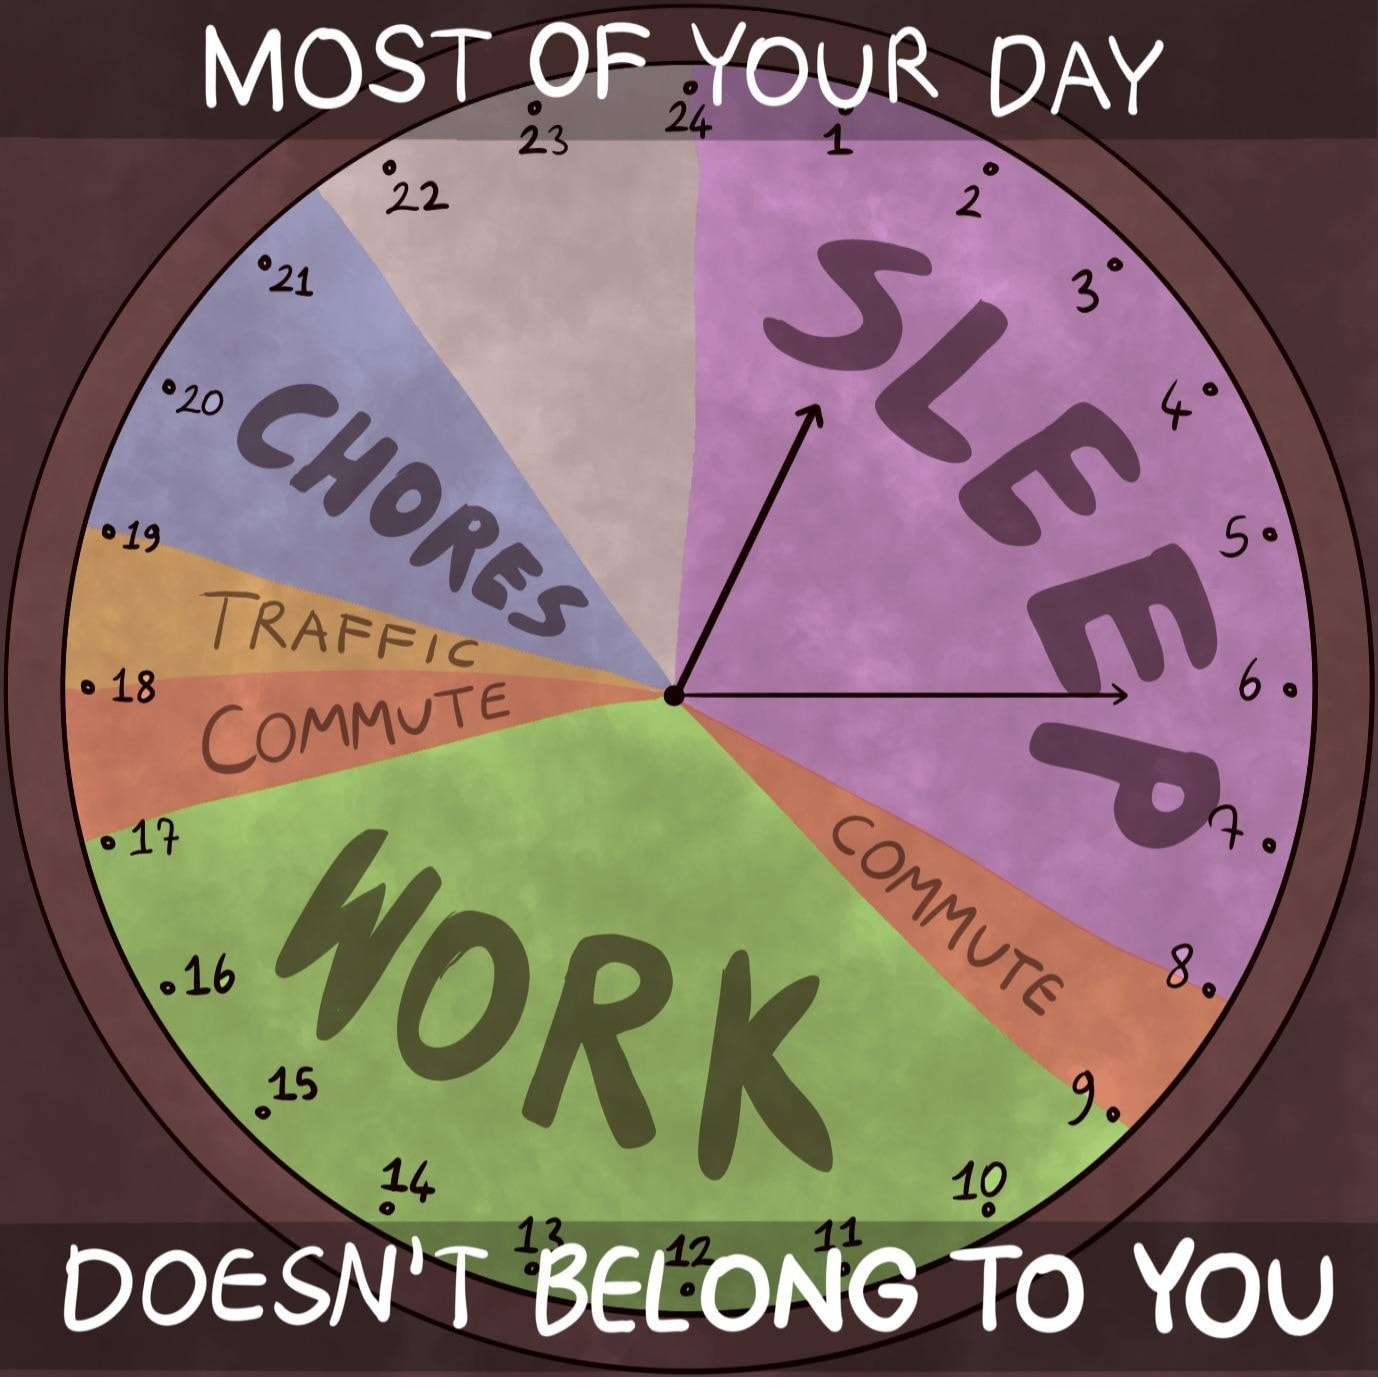 Most of your day does not belong to you